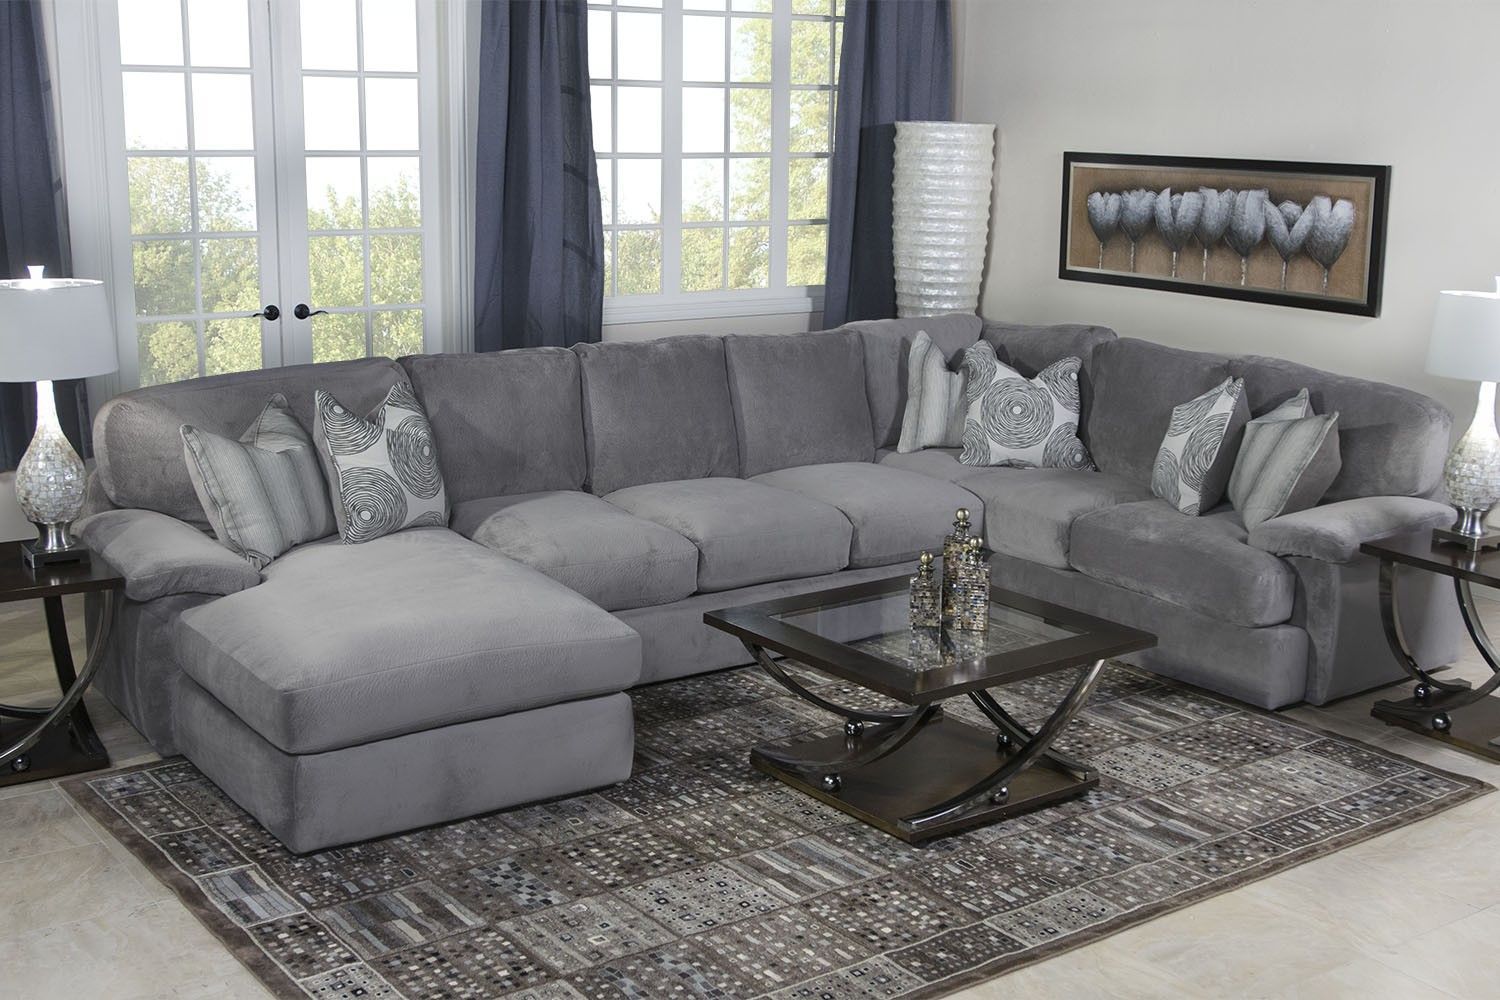 Key west sectional living room in gray living room mor for Living room ideas for grey sofa